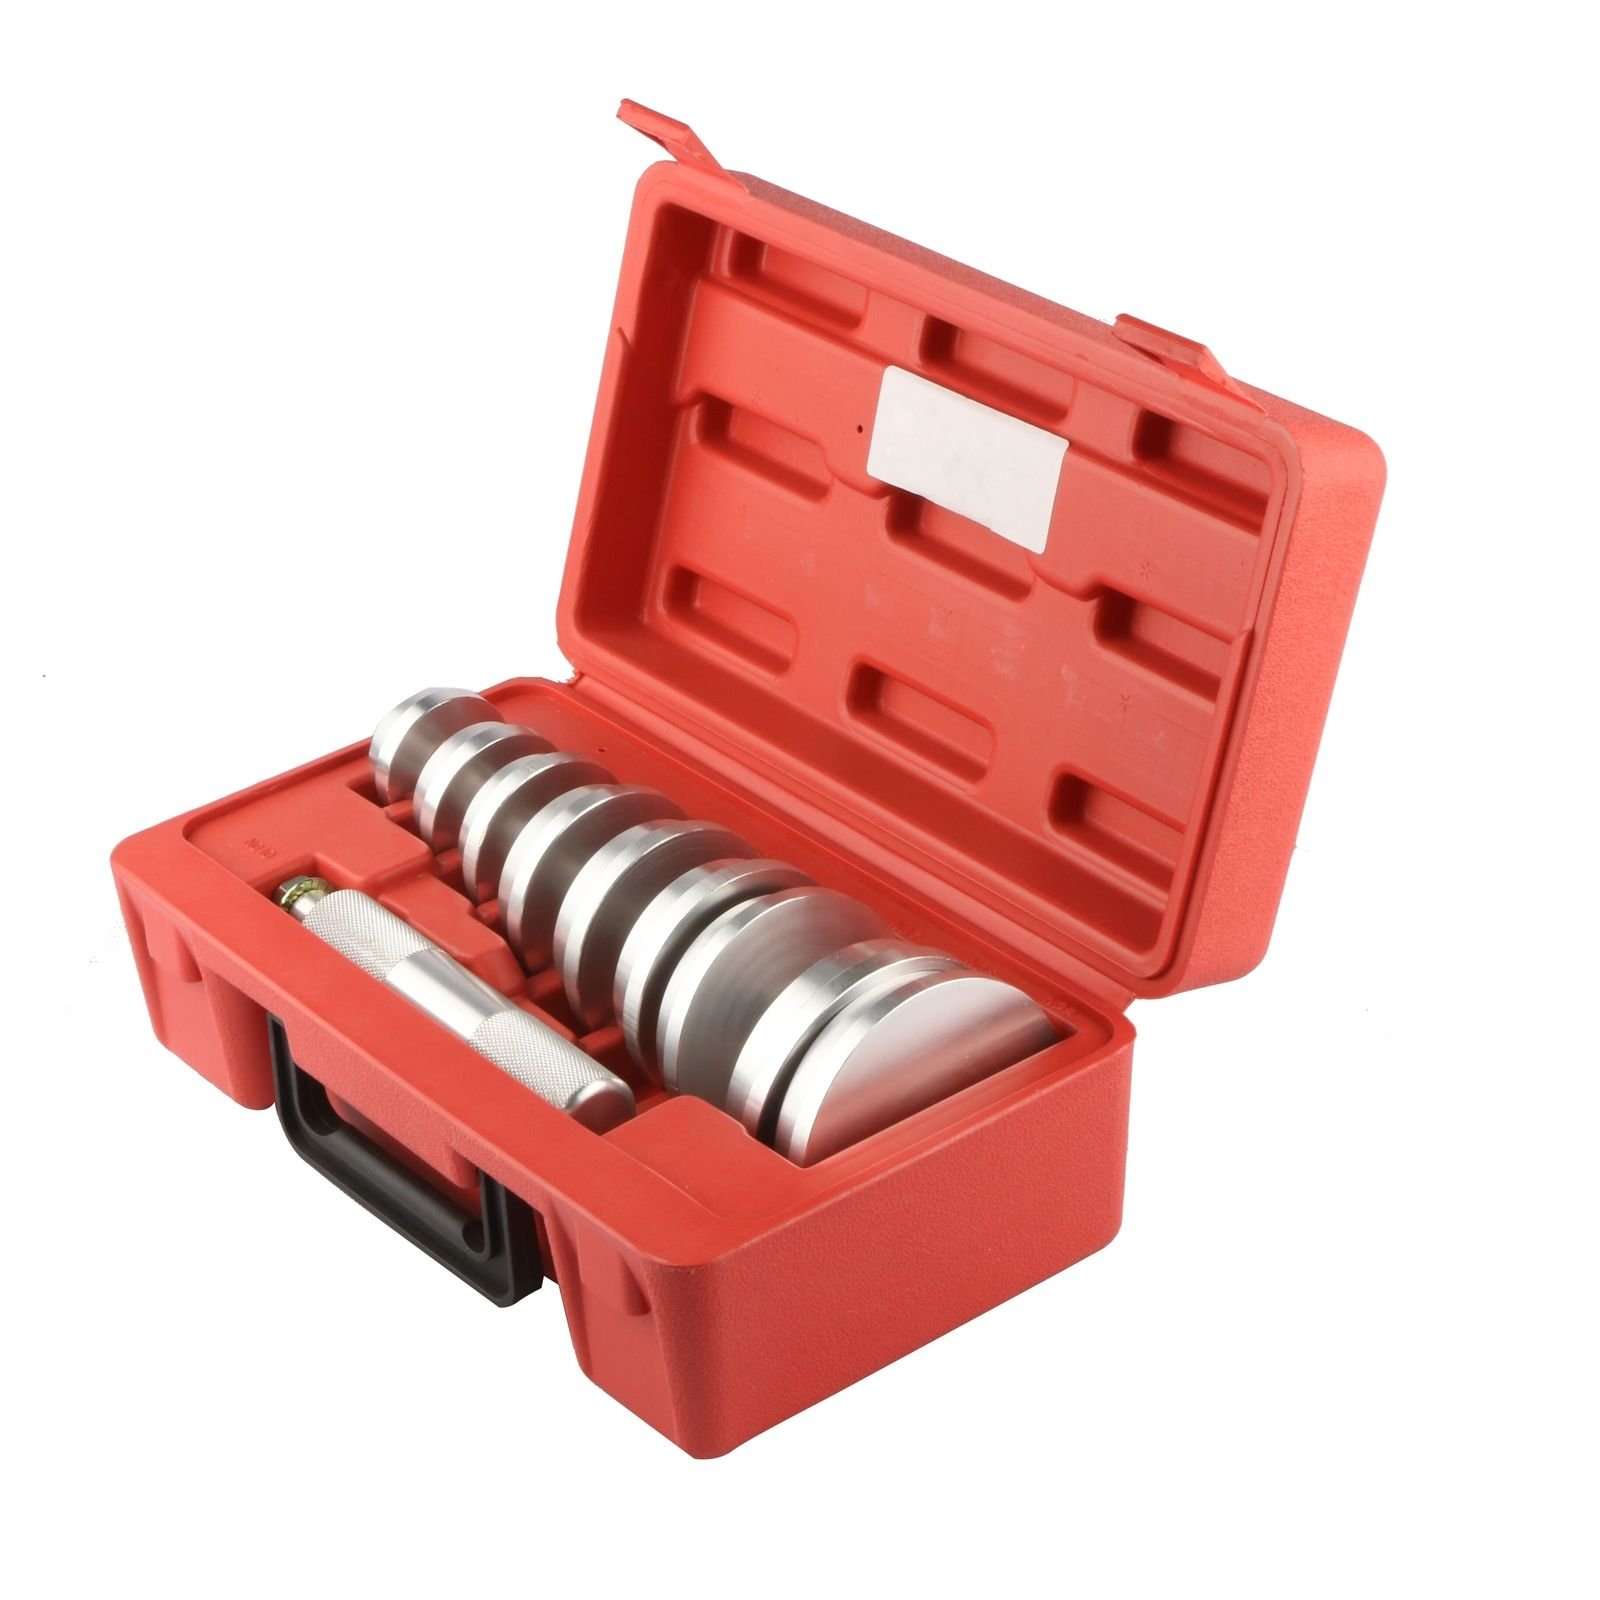 MOSTPLUS Bearing Race and Seal Bush Driver Set w/Carrying Case-Universal Kit for Automotive Wheel Bearings 10 Pieces